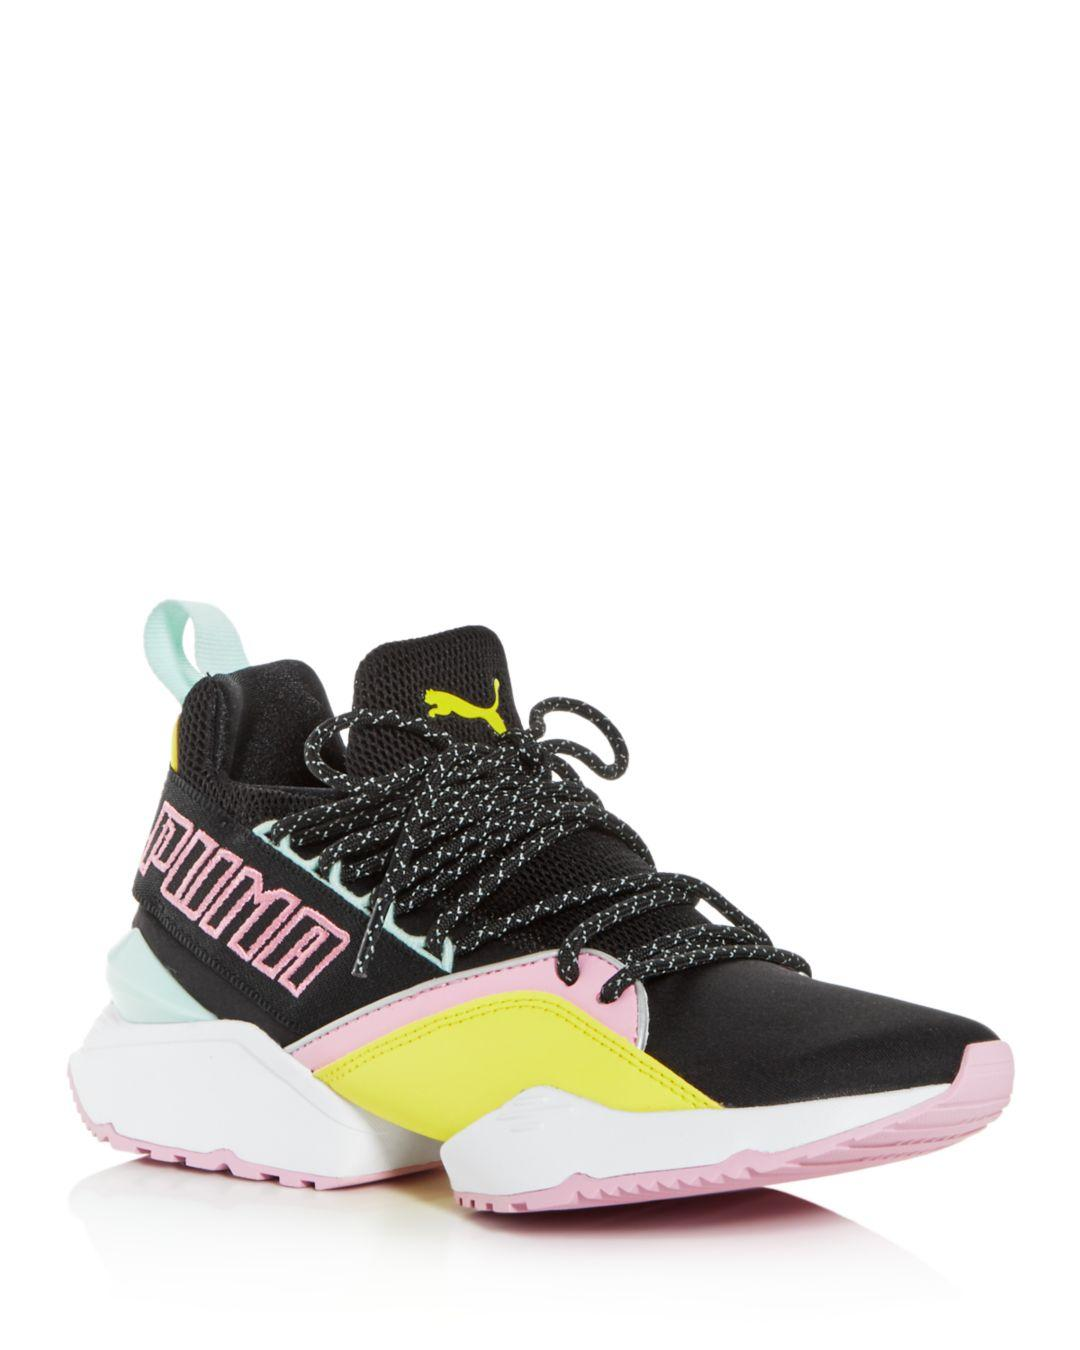 b3a1618b8dc Lyst - PUMA Women s Muse Maia Tz Knit Low-top Sneakers - Save 30%